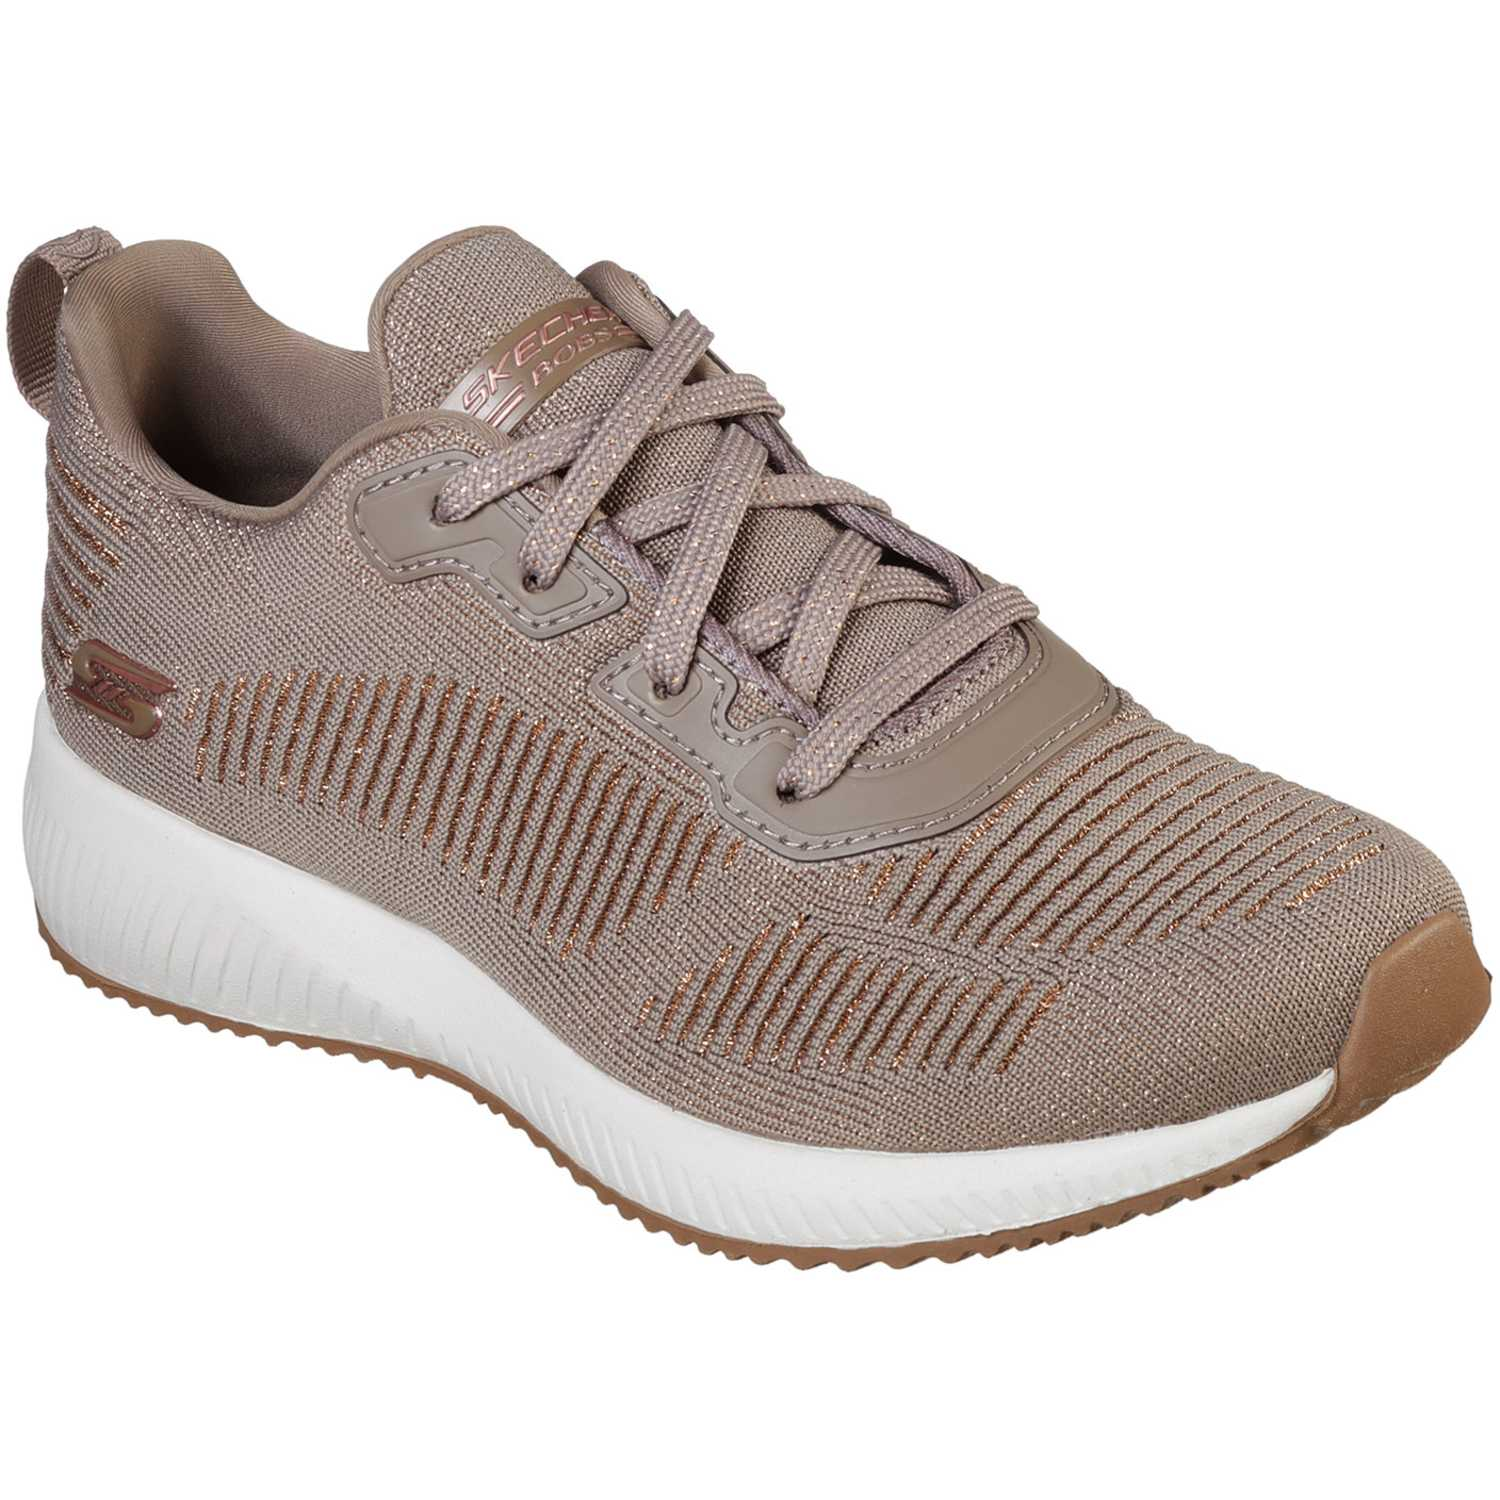 Skechers Bobs squad - Glam league Beige Walking